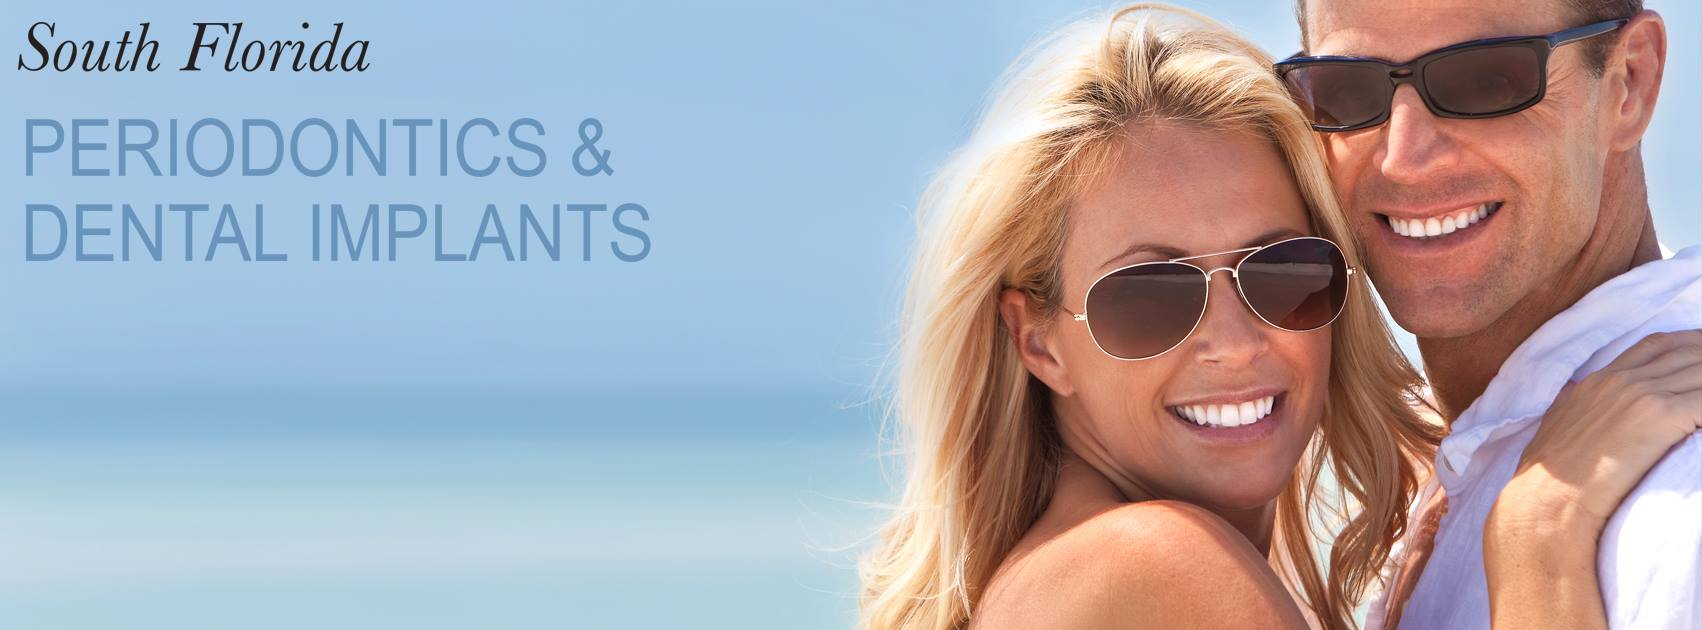 South Florida Periodontics and Dental Implants reviews | Periodontists at 8720 N Kendall Dr - Miami FL